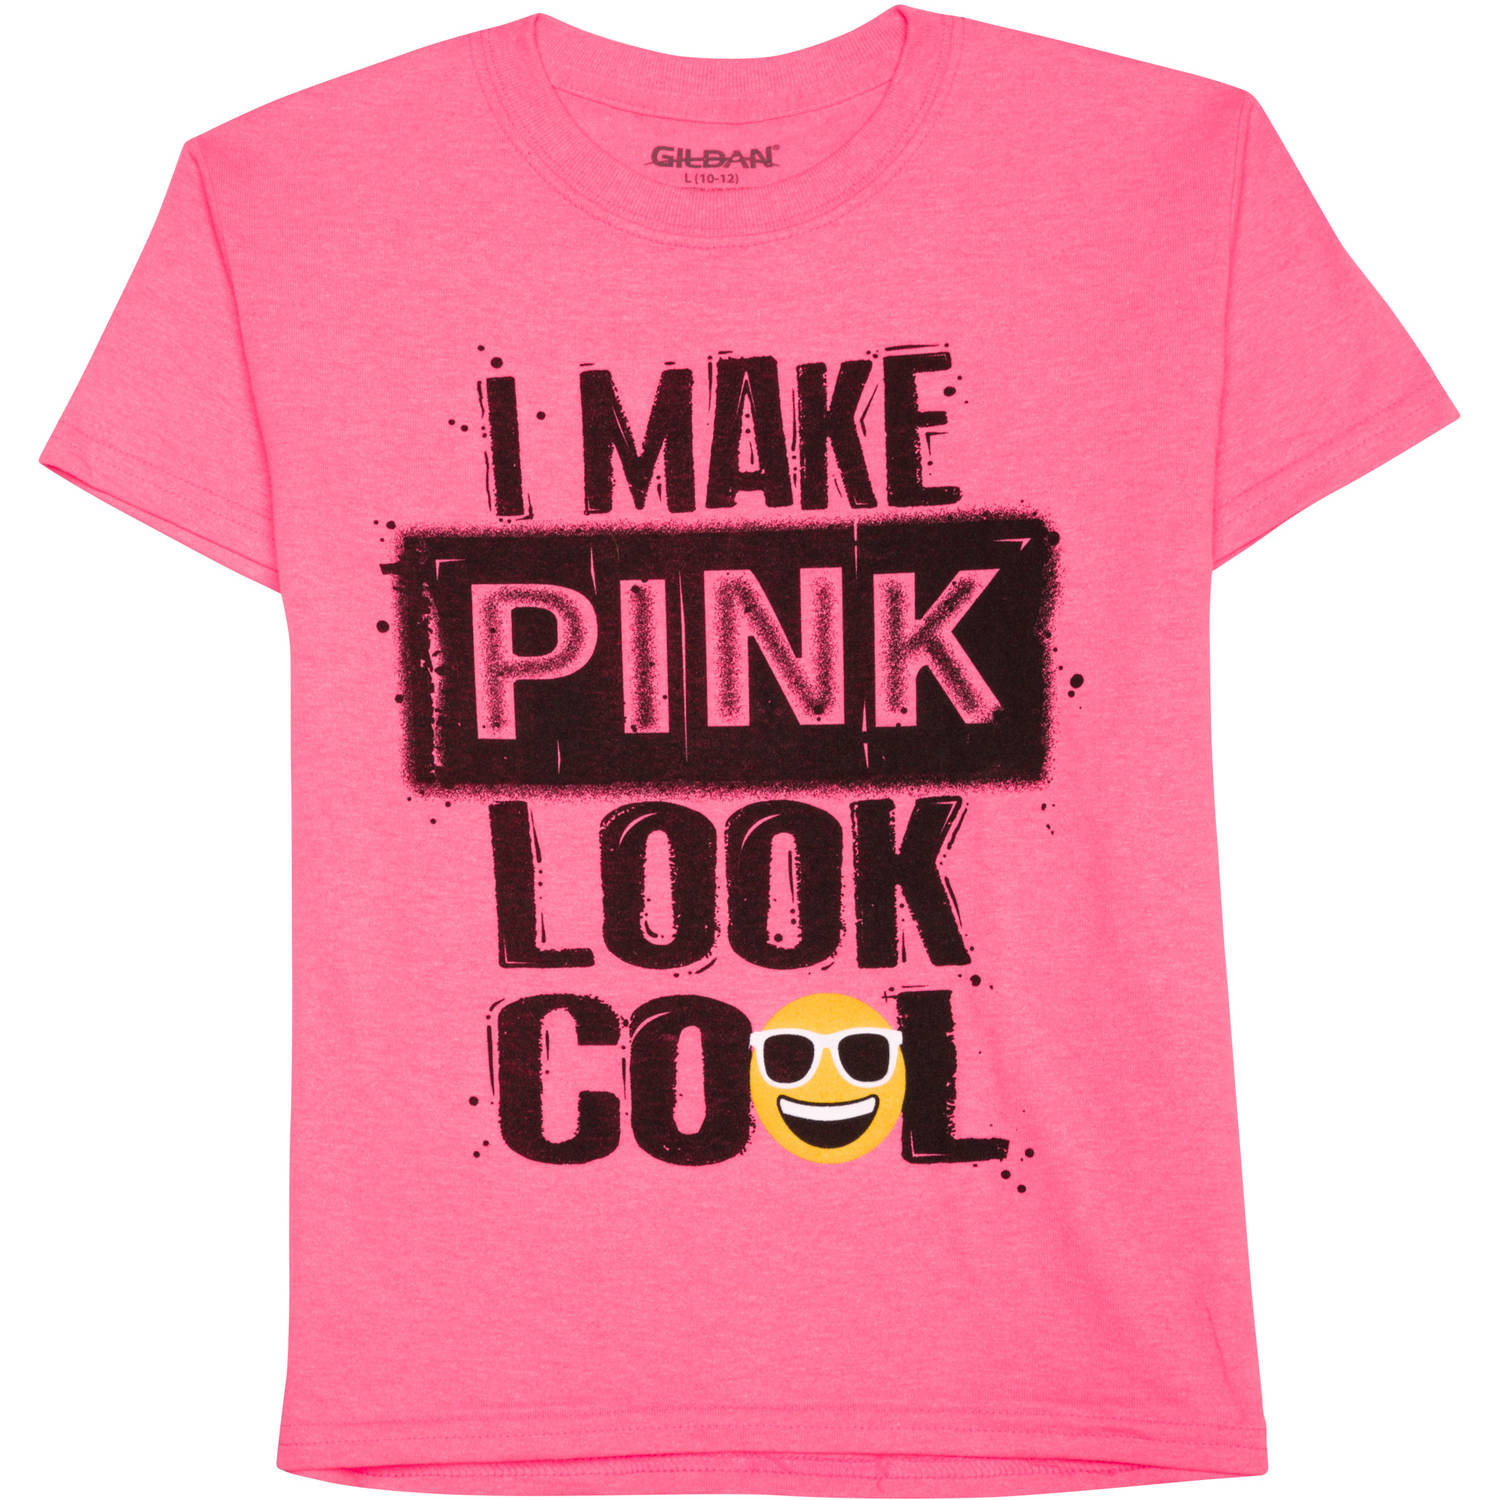 Boys' I Make Pink Look Cool Short Sleeve Graphic Crew T-Shirt